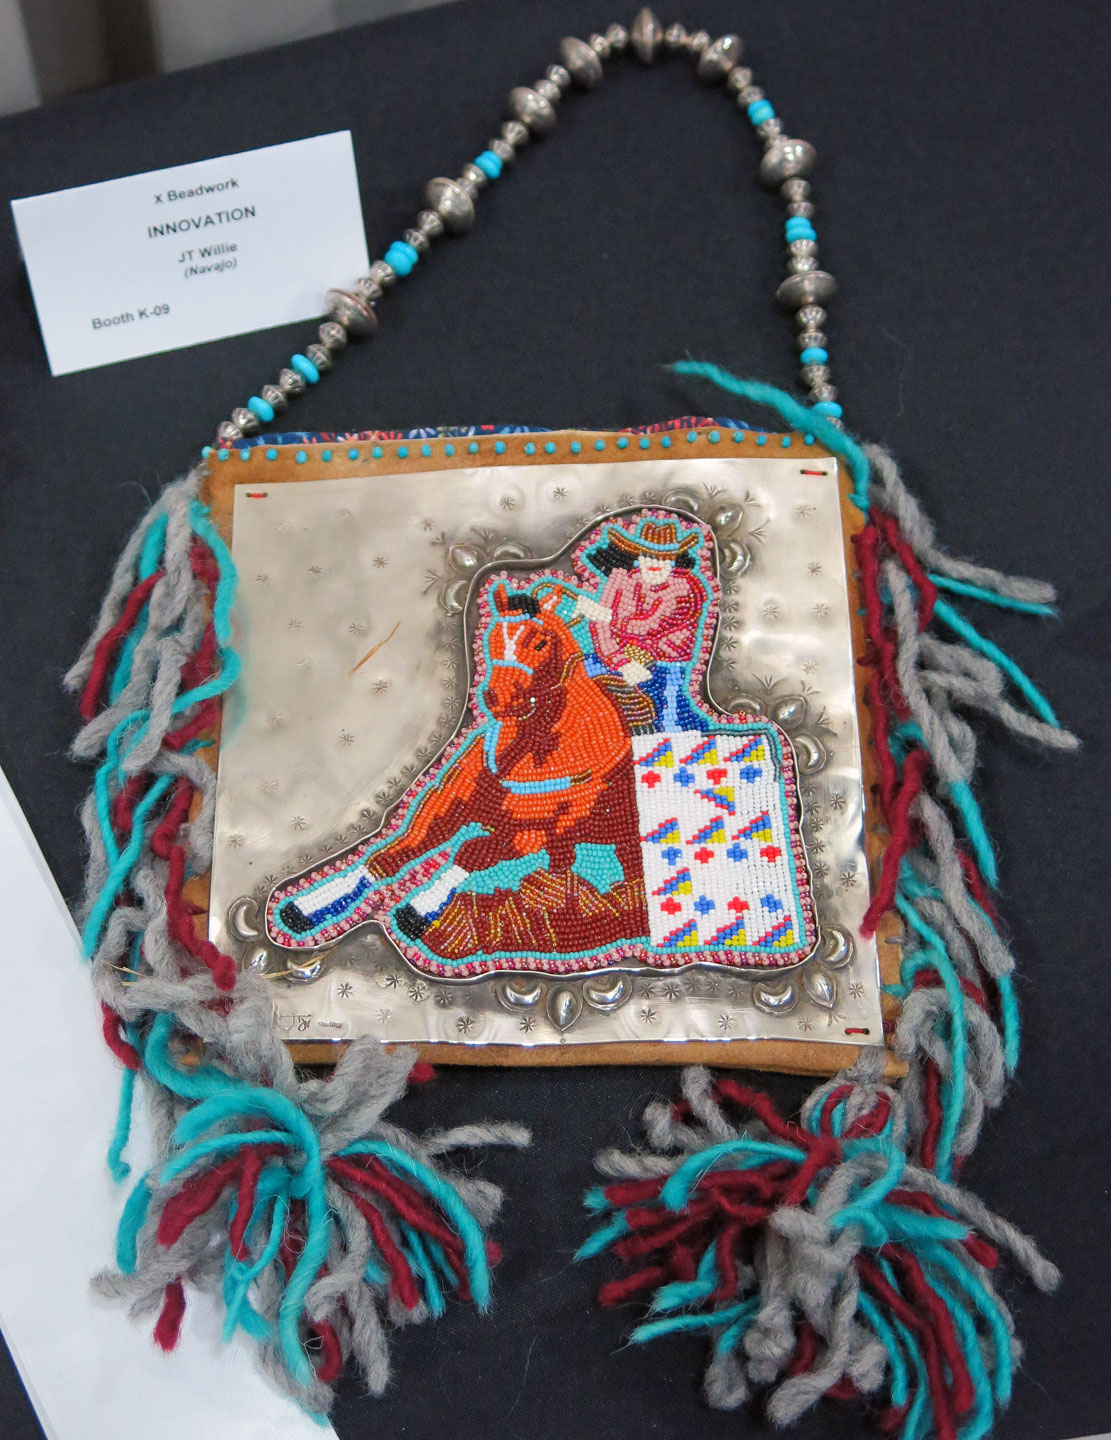 "BEADWORK BAG made by JT Willie (Diné), who received the Innovation award in the Beadwork category. This stunning piece features stamped silver and a horse and rider emerging from behind a rug pattern. Such beadwork is the subject of ""Beads: A Universe of Meaning"" at the Wheelwright Museum in New Mexico, recently featured in Ornament Volume 40.2.   www.wheelwright.org   www.ornamentmagazine.org/shop/ornament-print-edition-volume-402"